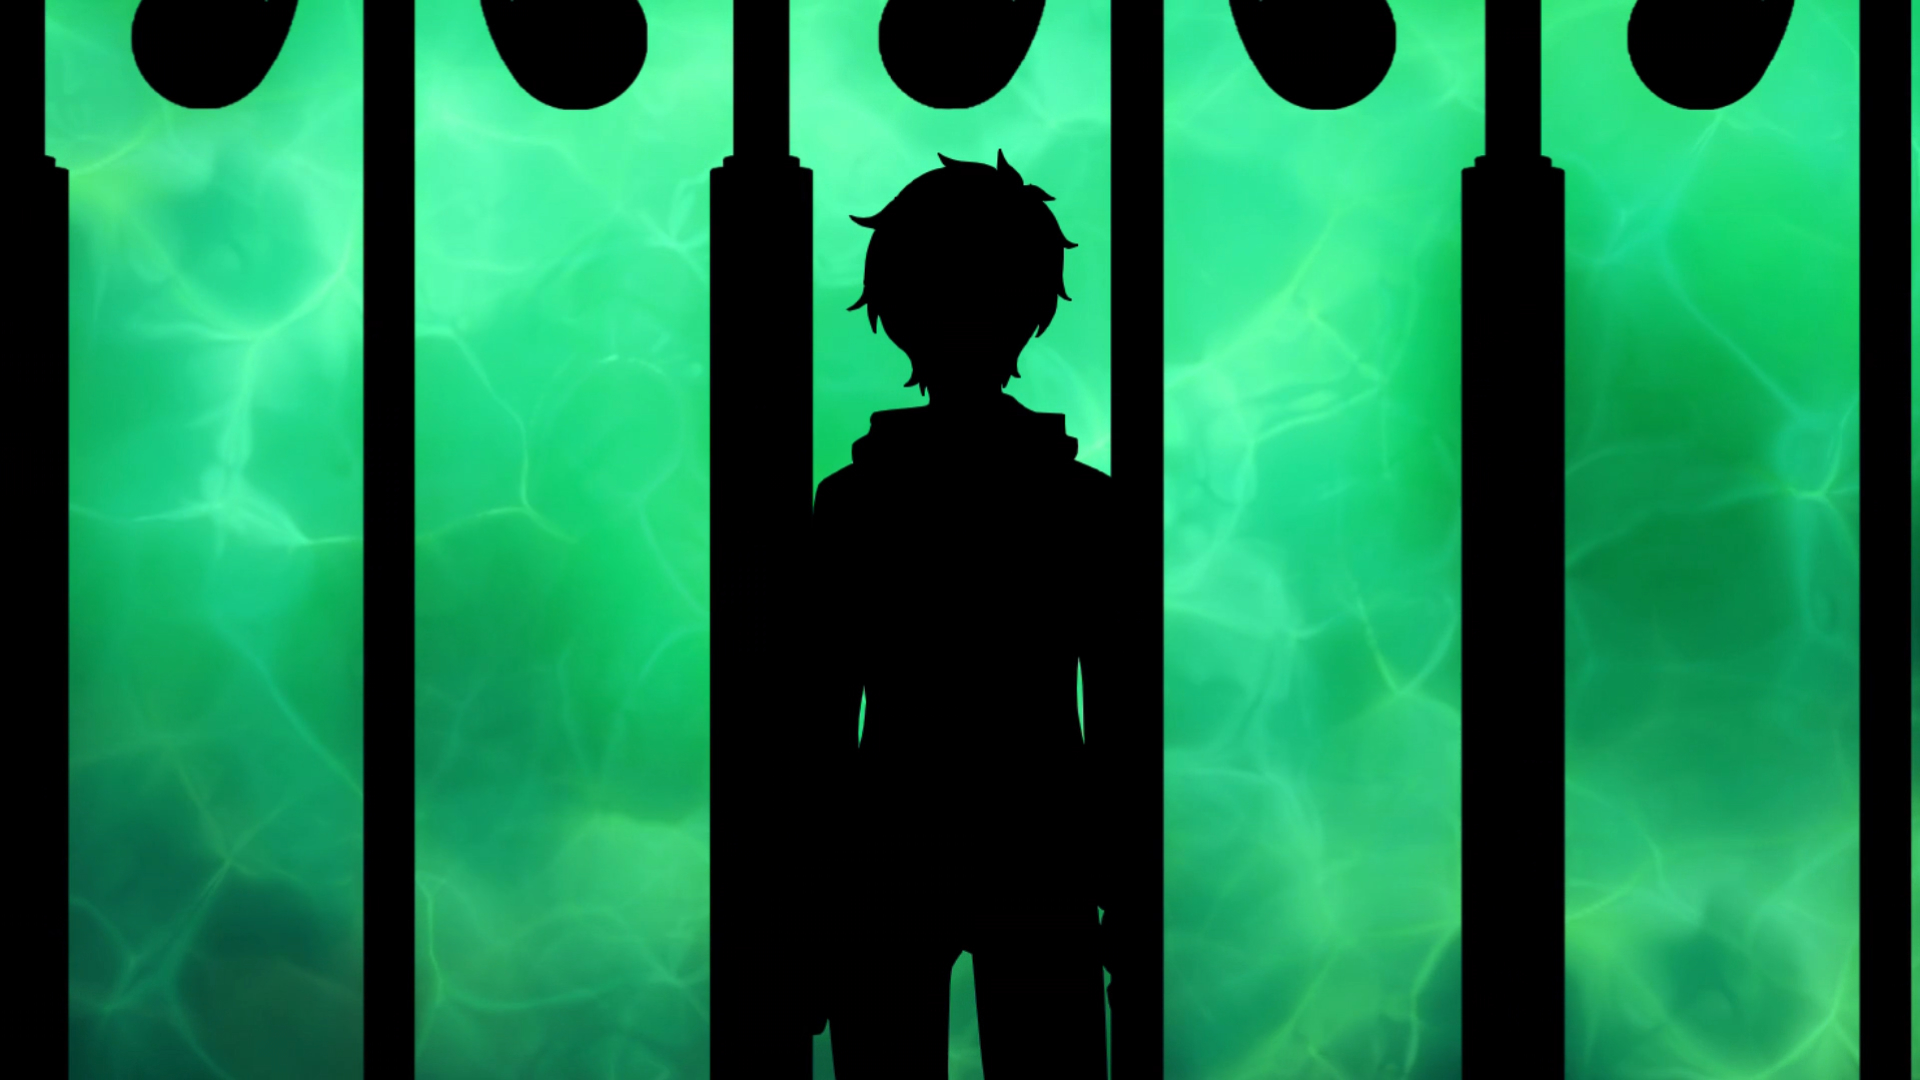 Baam Tower of God Wallpaper, HD Anime 4K Wallpapers ...